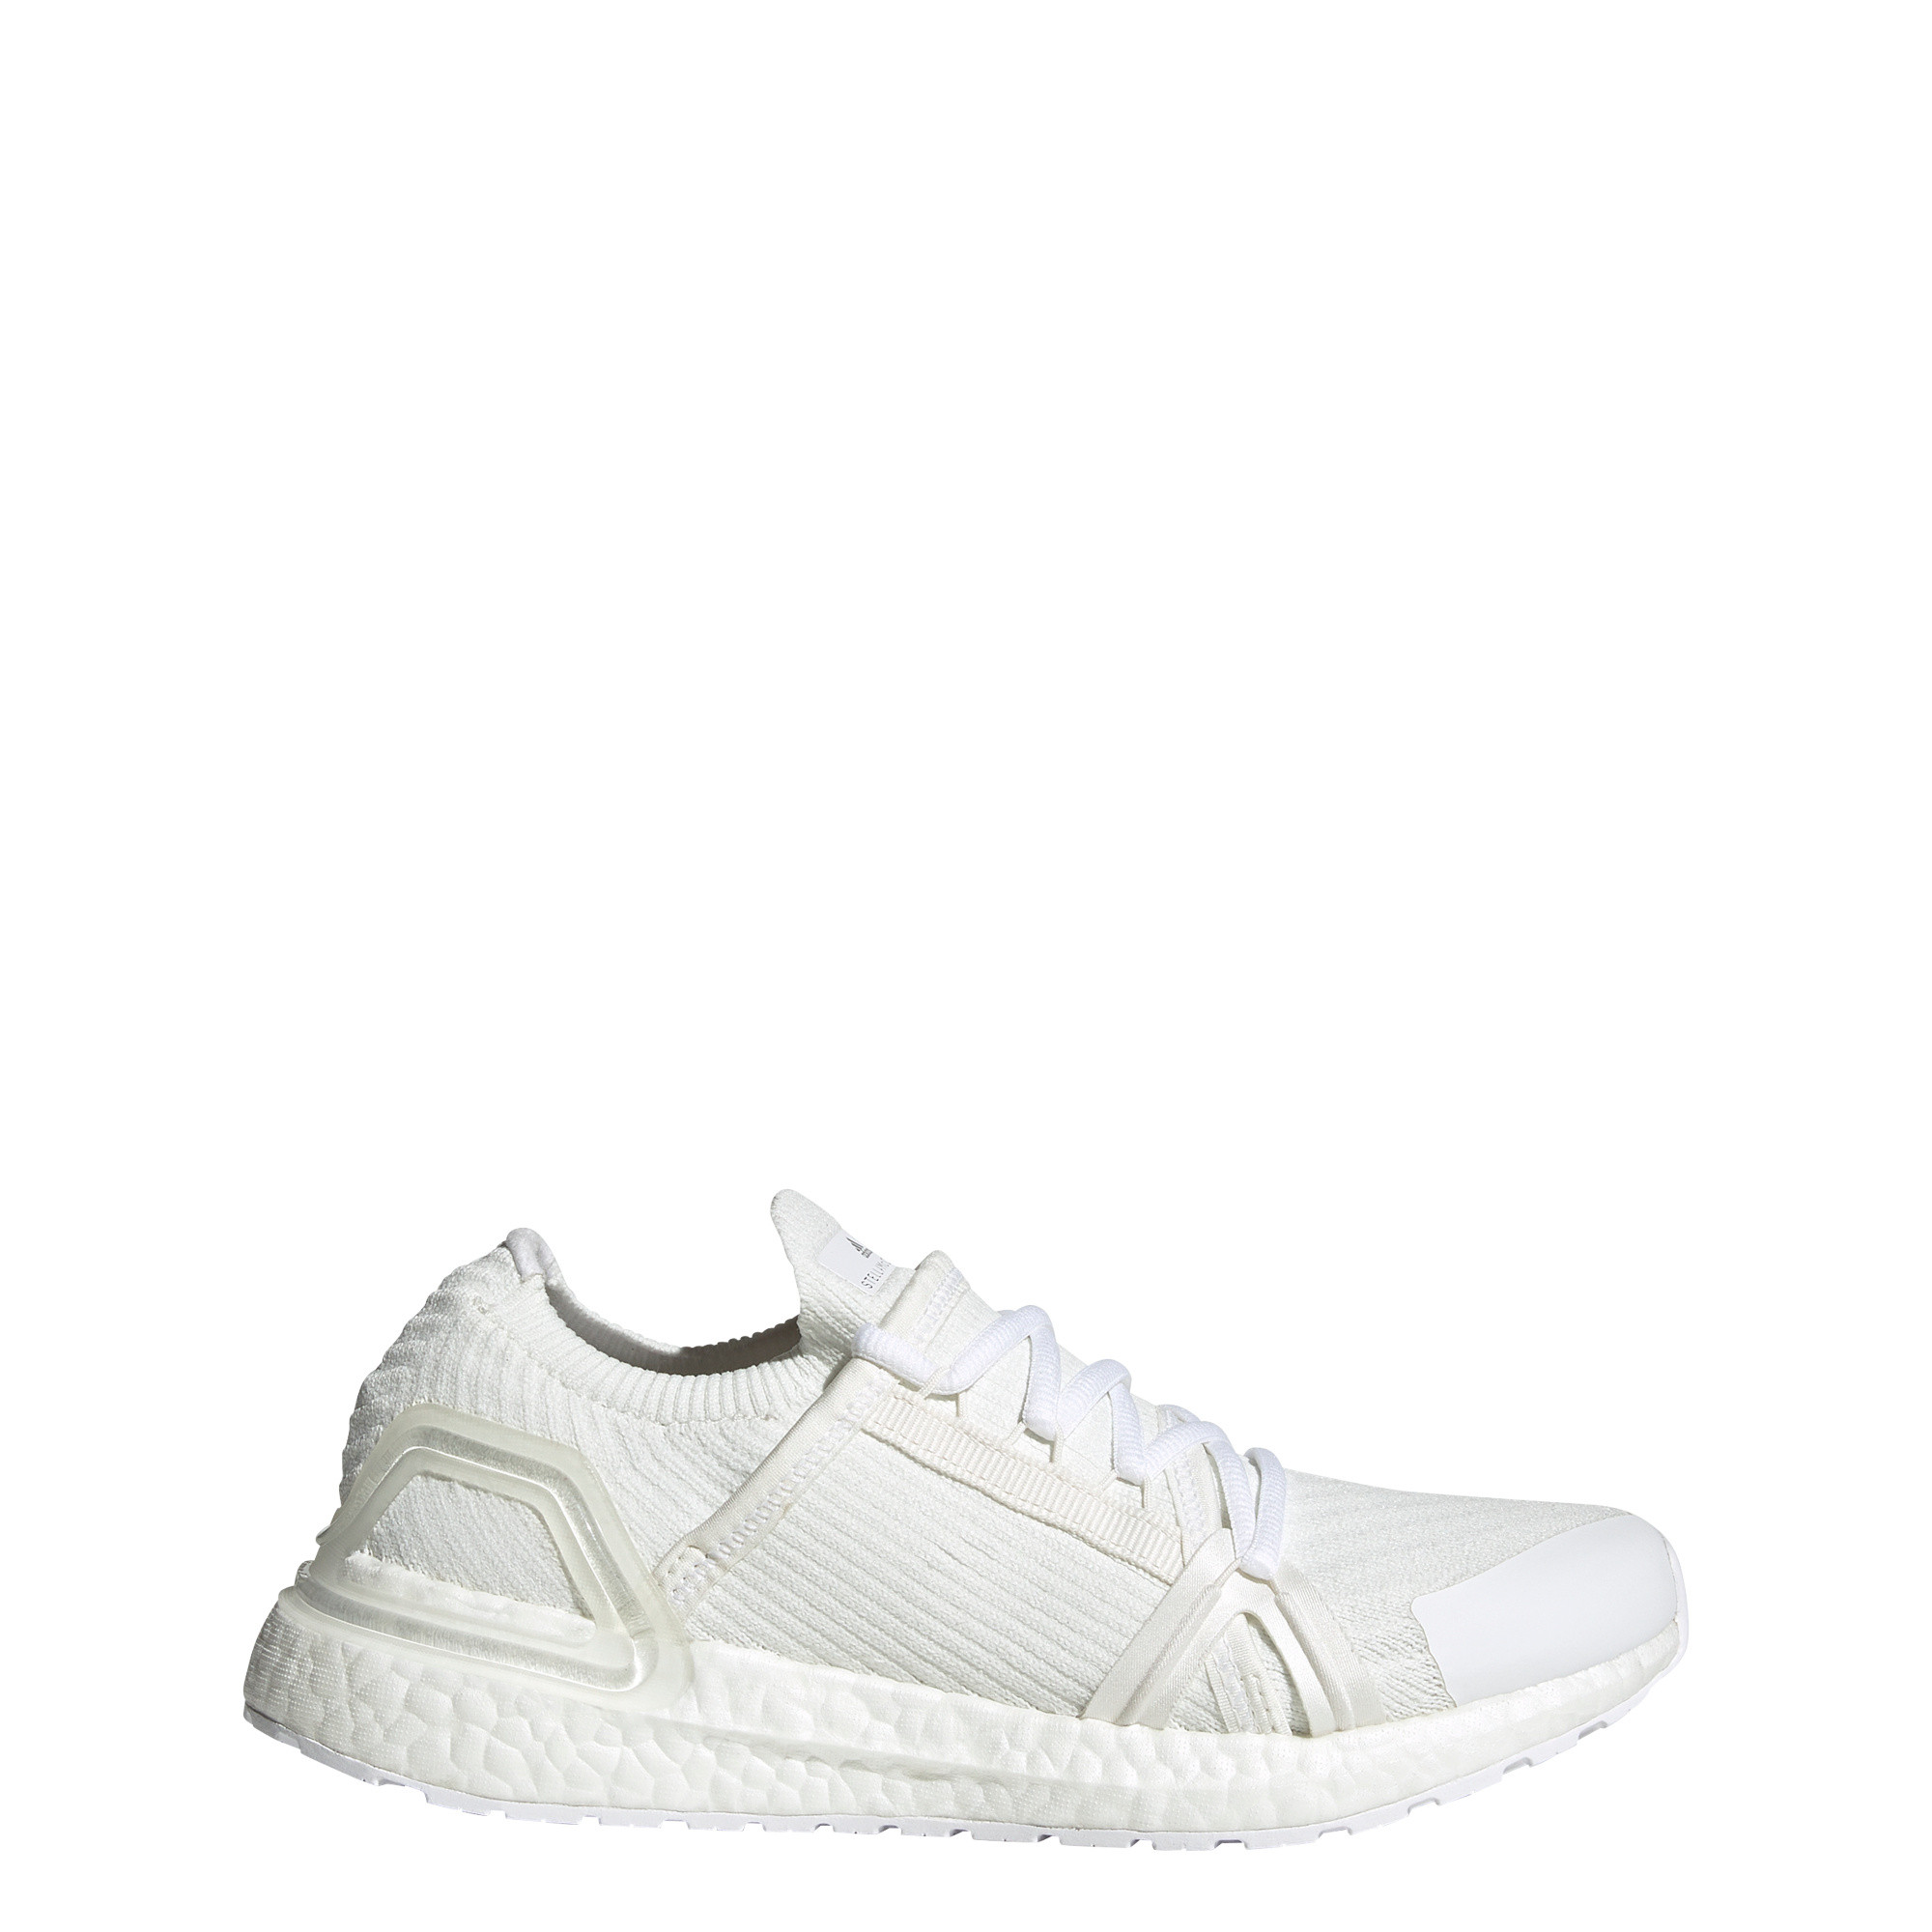 Trainers Ultraboost 20 No Dye Running, Bianco, large image number 1